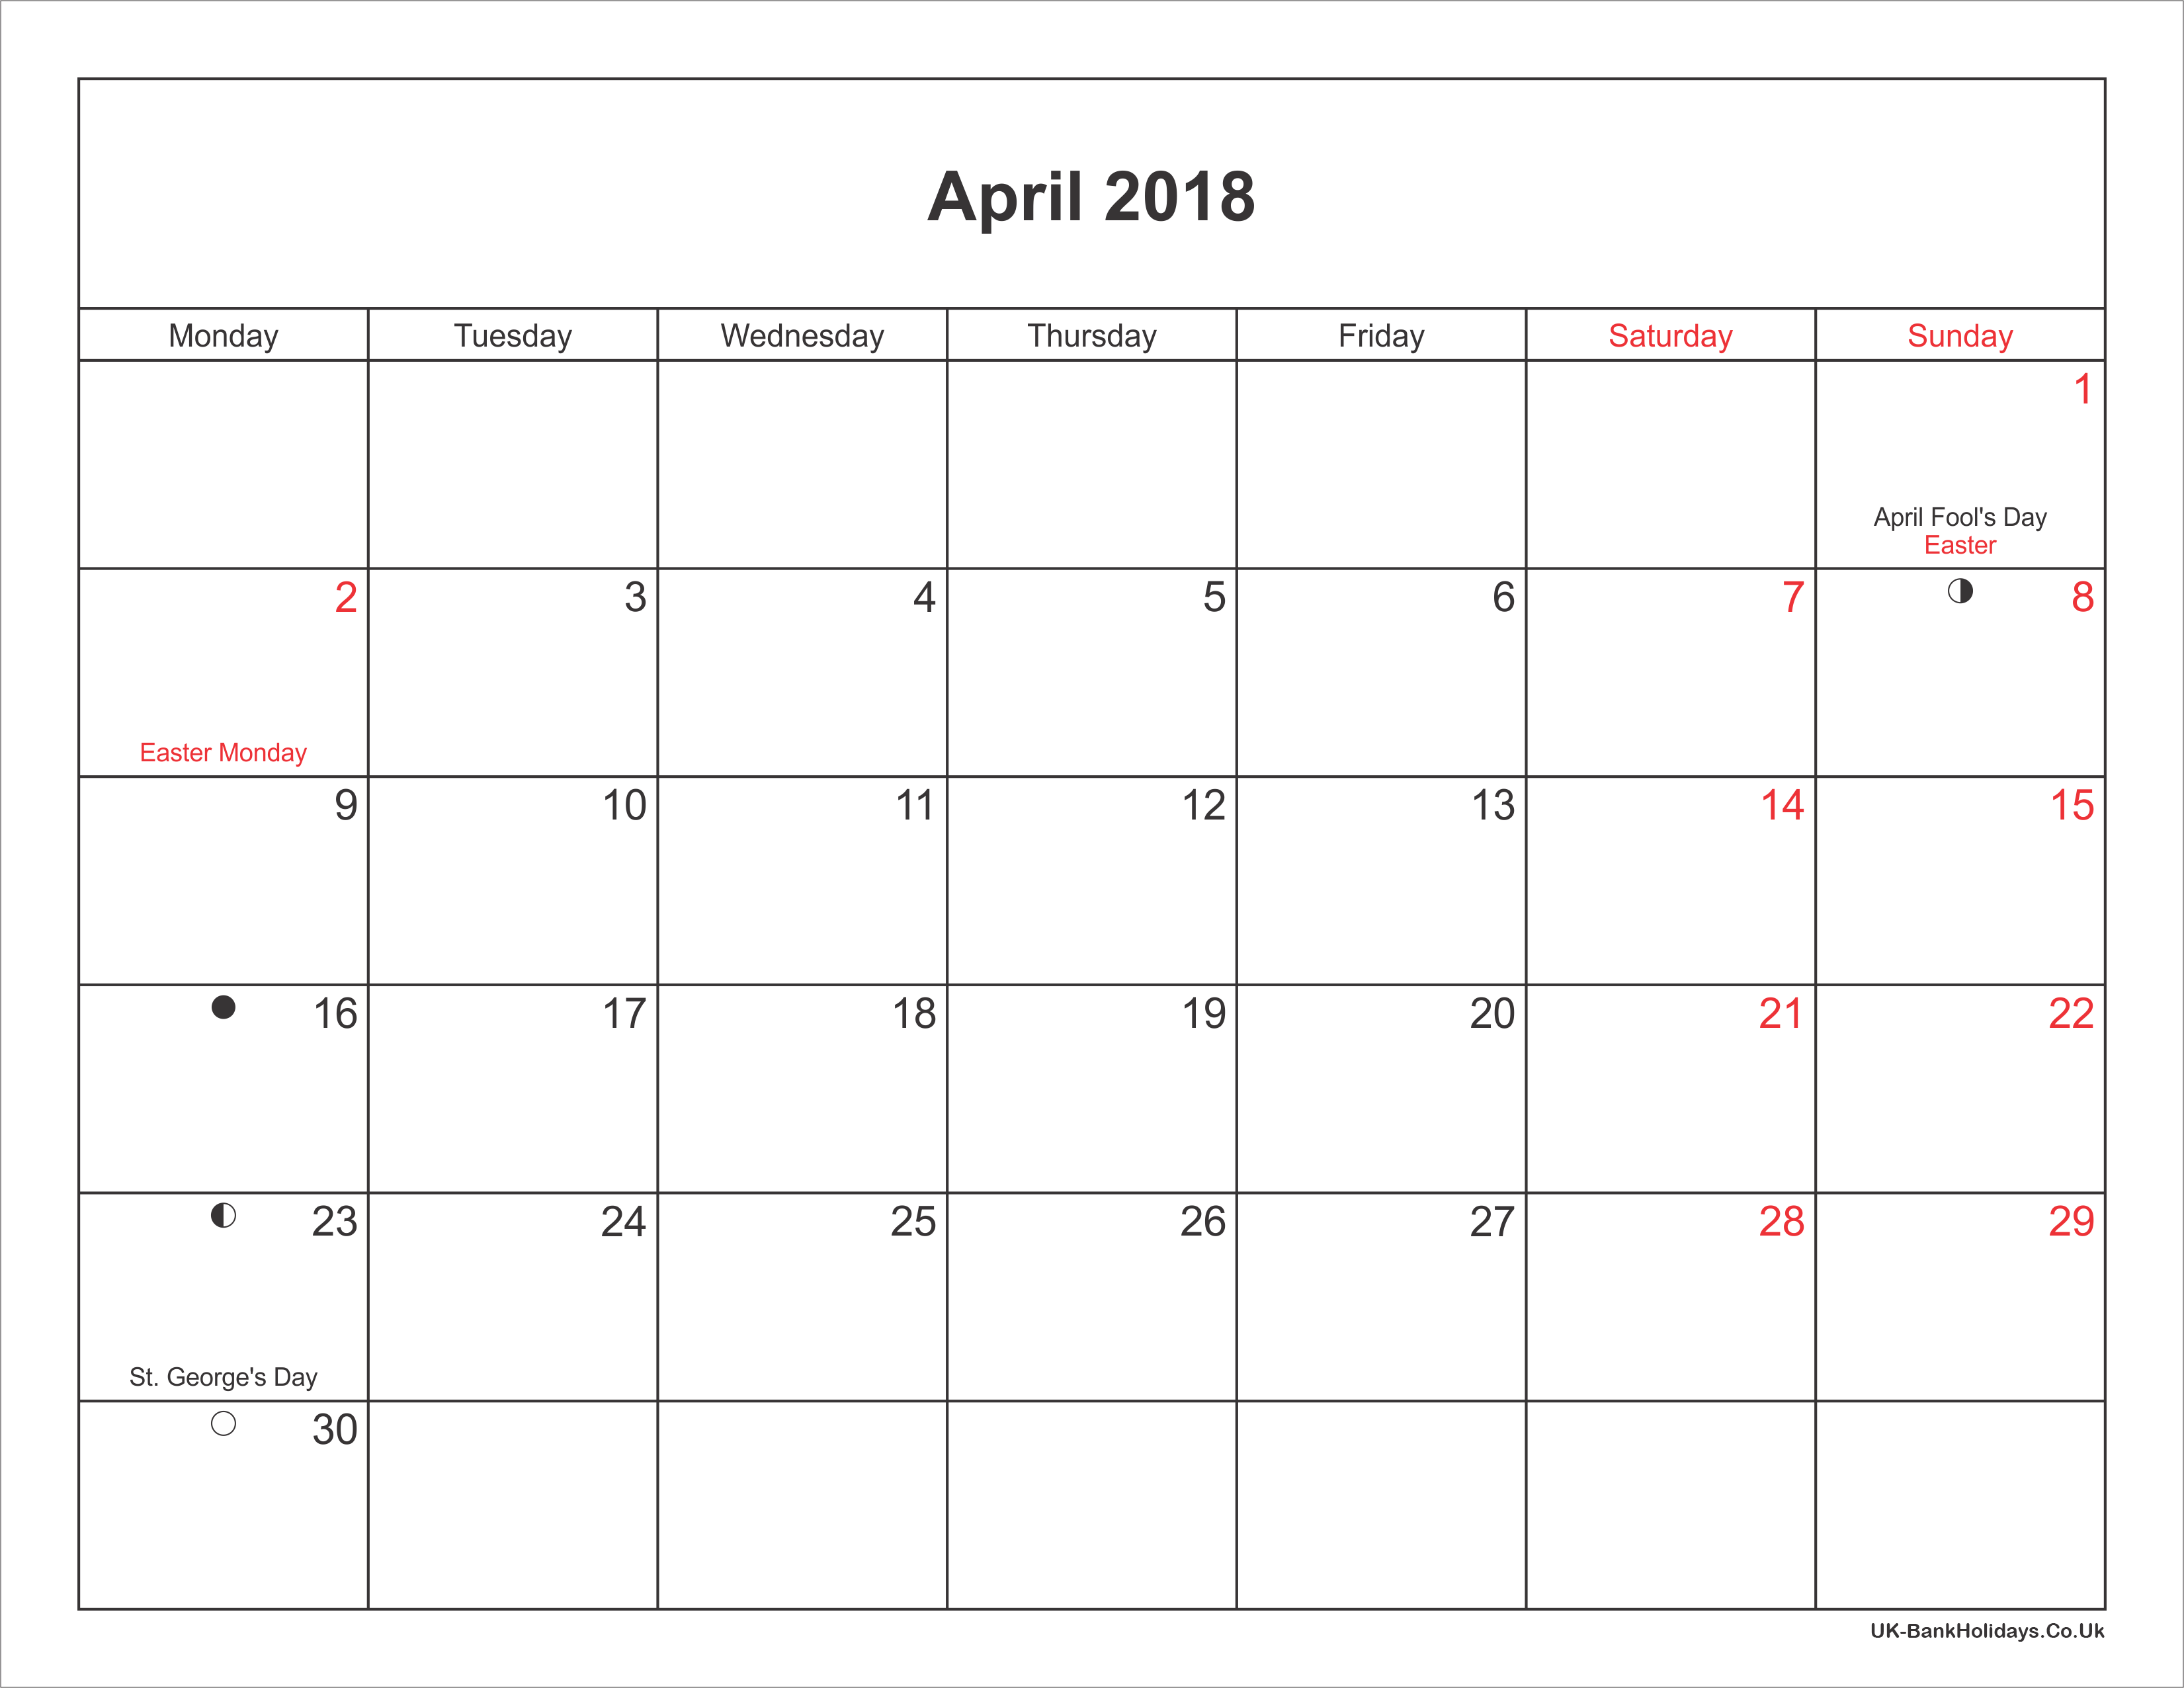 April 2018 Calendar Printable with Bank Holidays UK